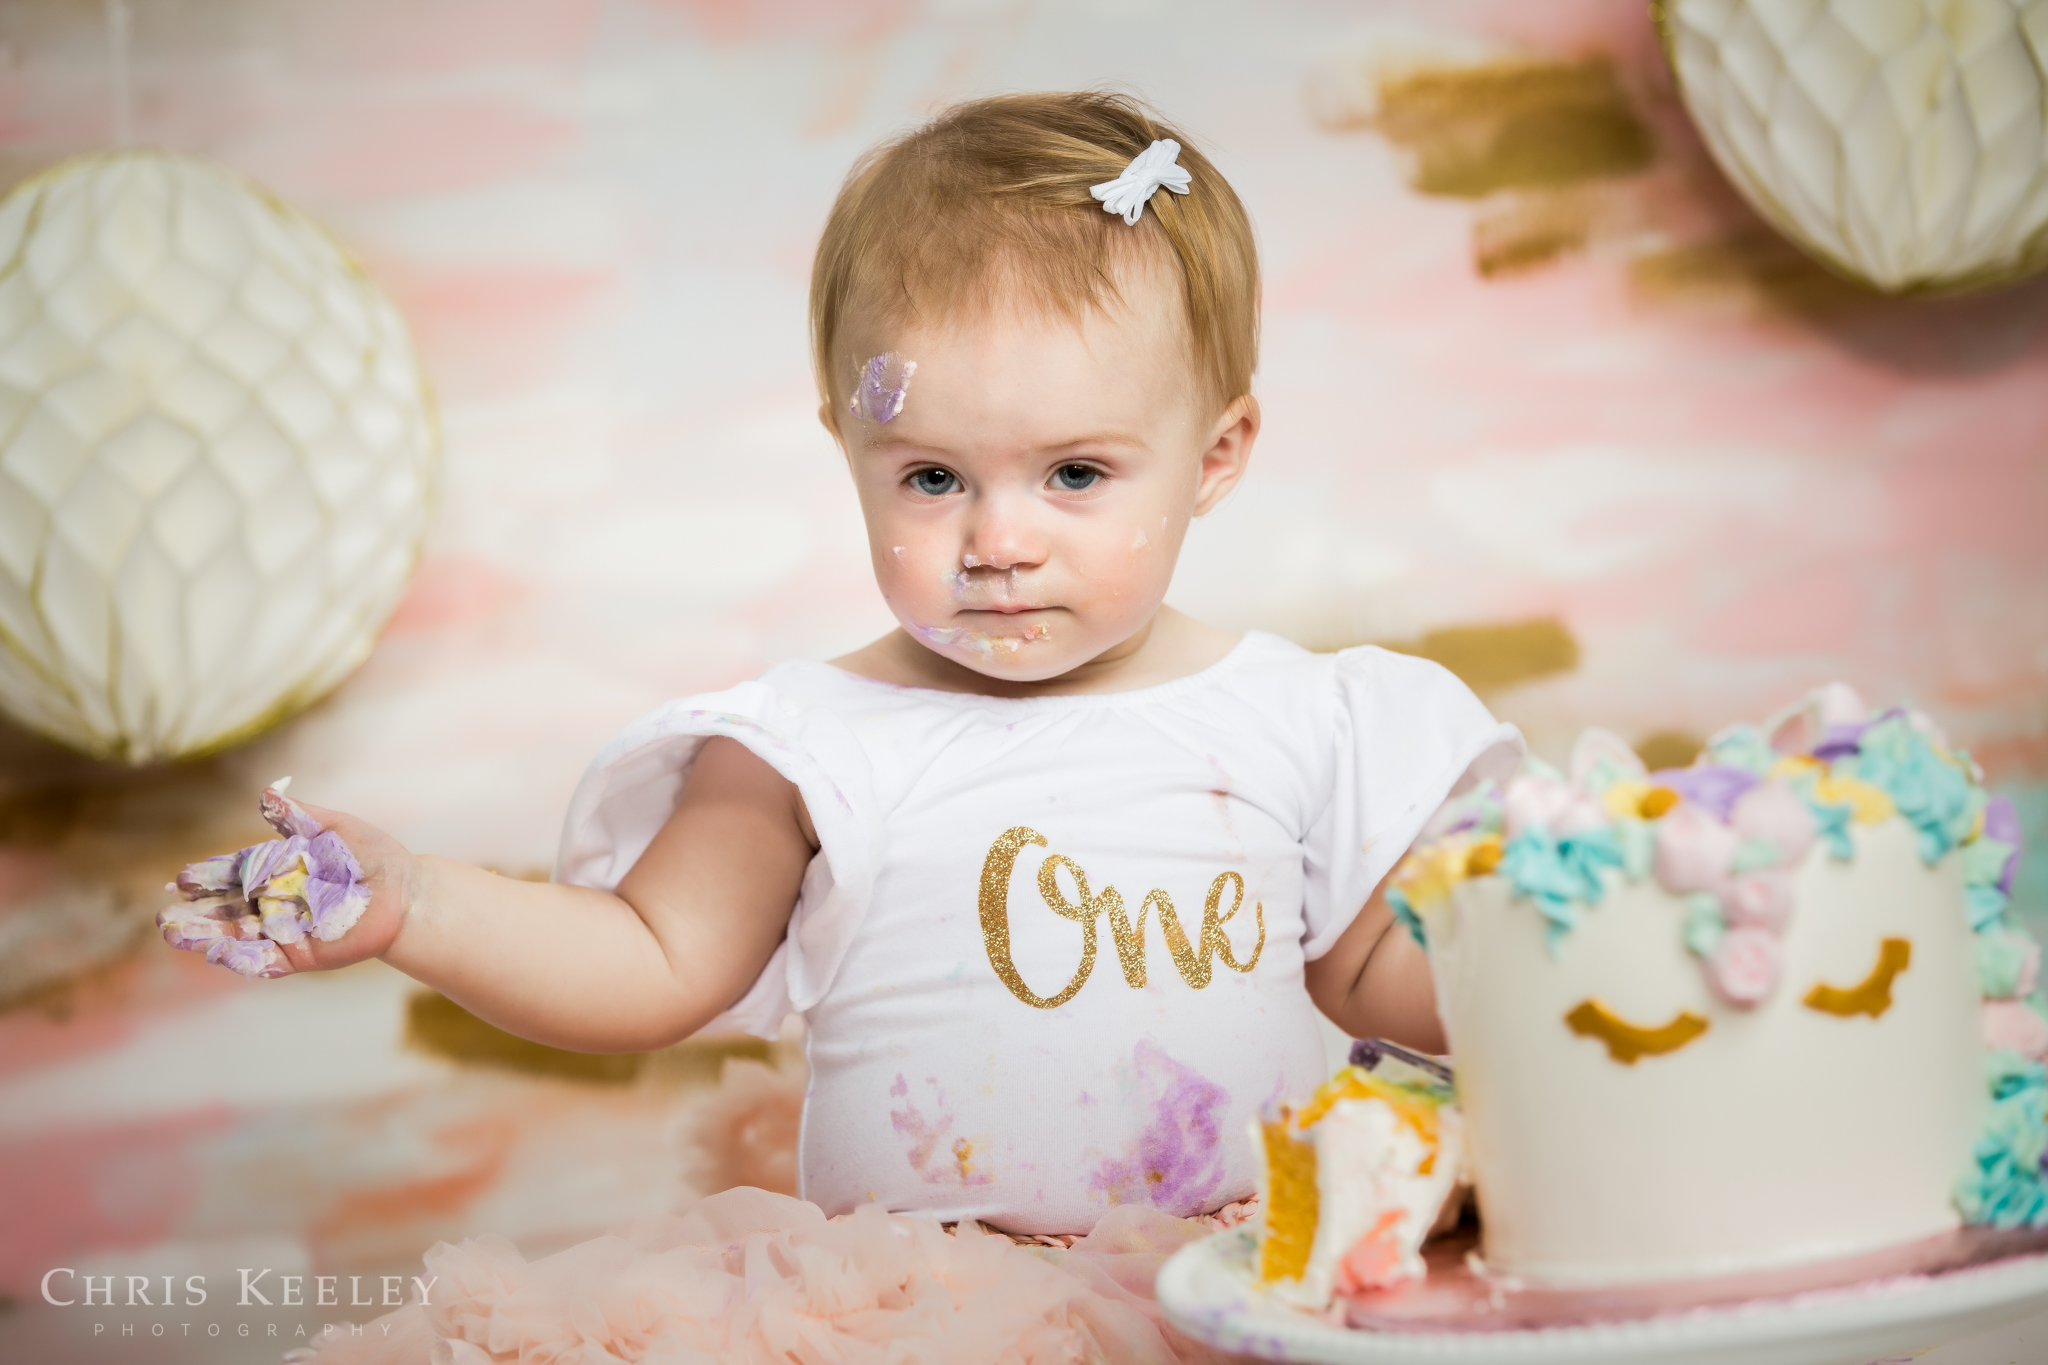 gwendolyn-one-year-cake-smash-dover-new-hampshire-photographer-15.jpg